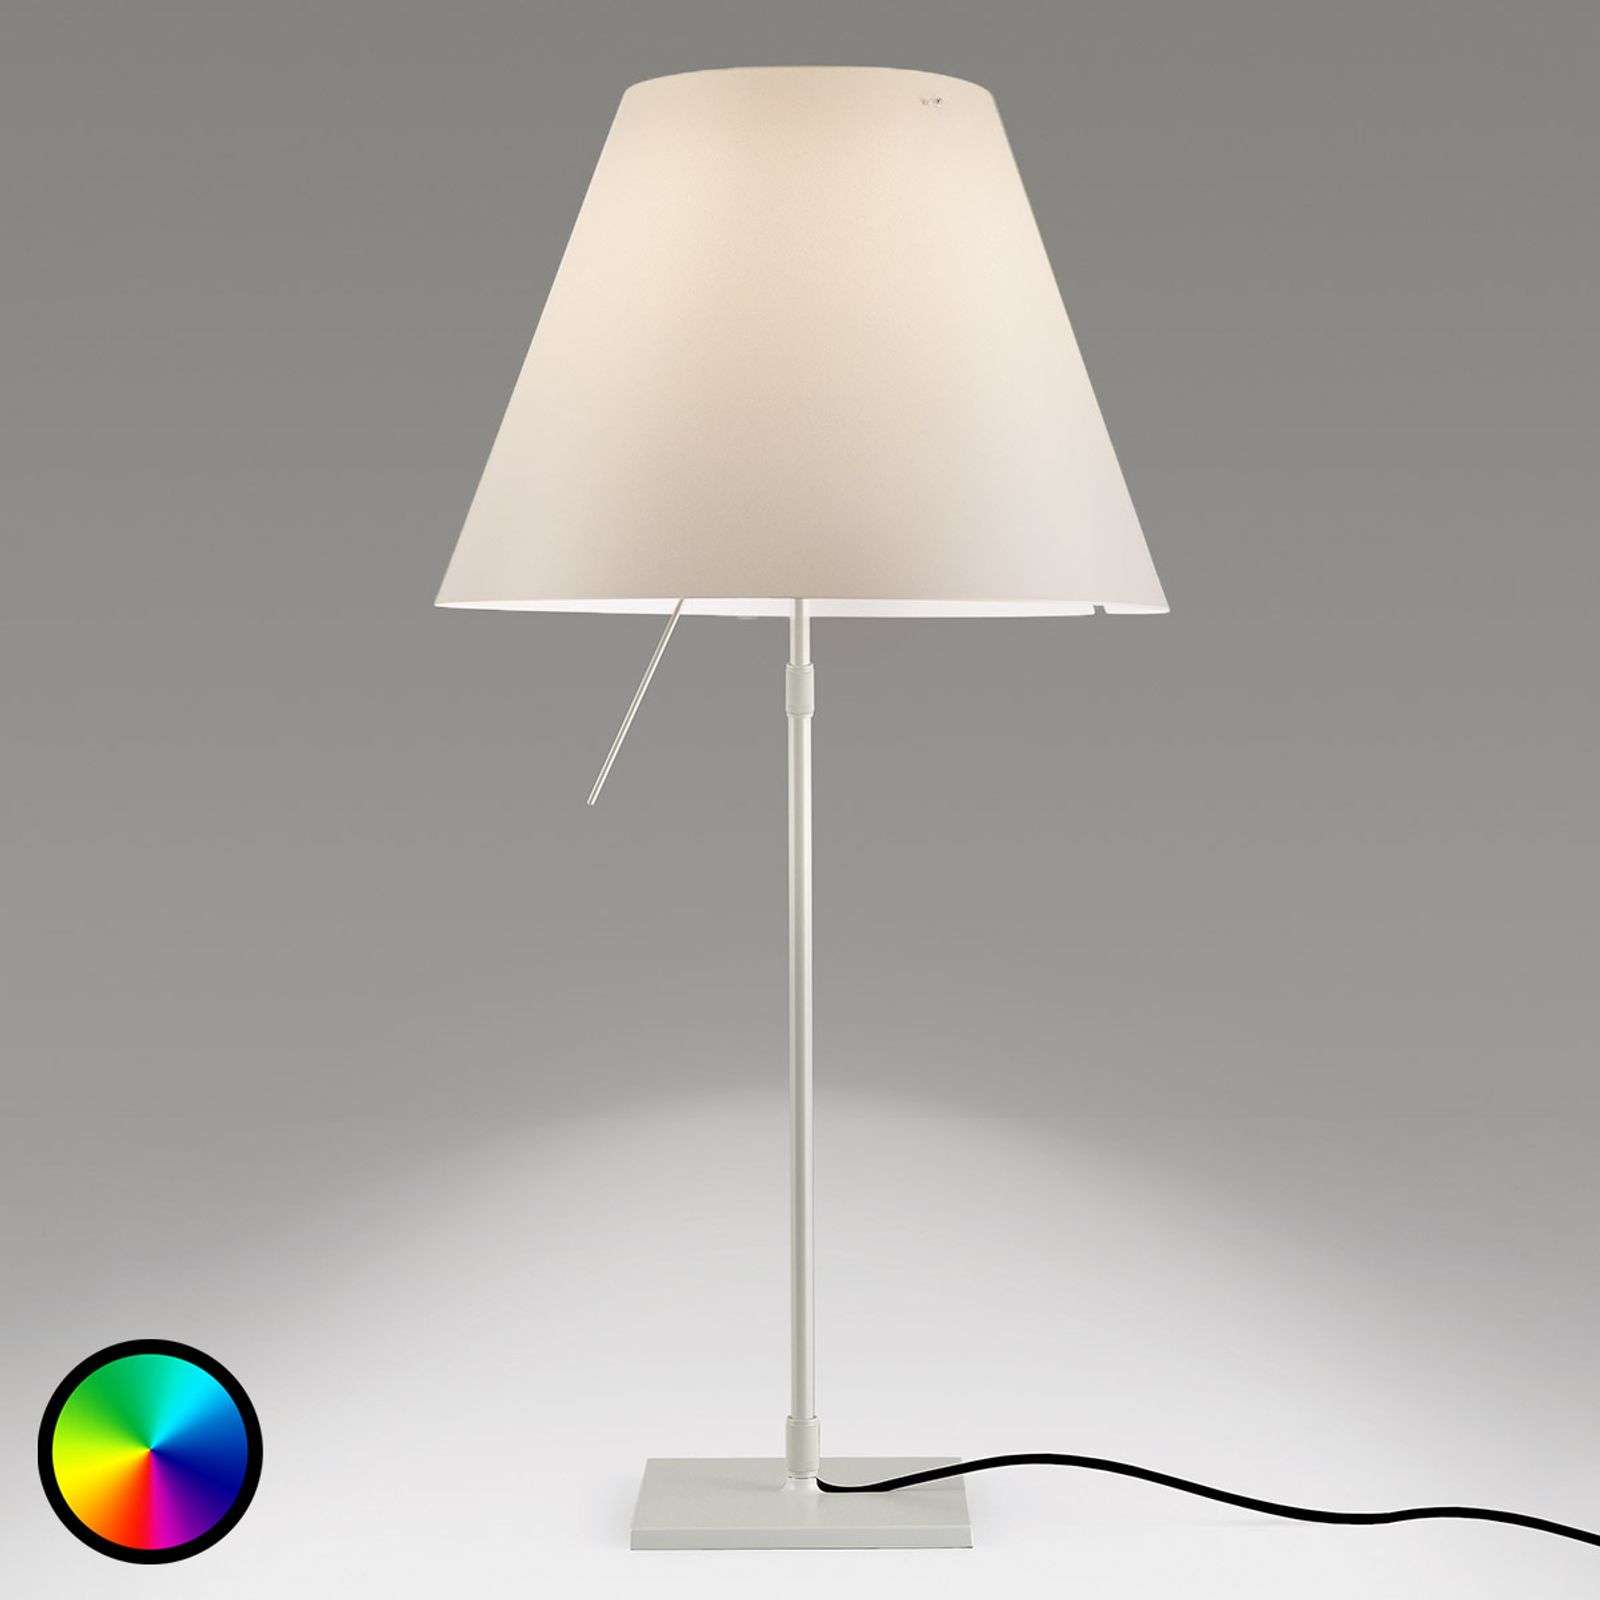 Lampe à poser LED Philips Hue Costanza